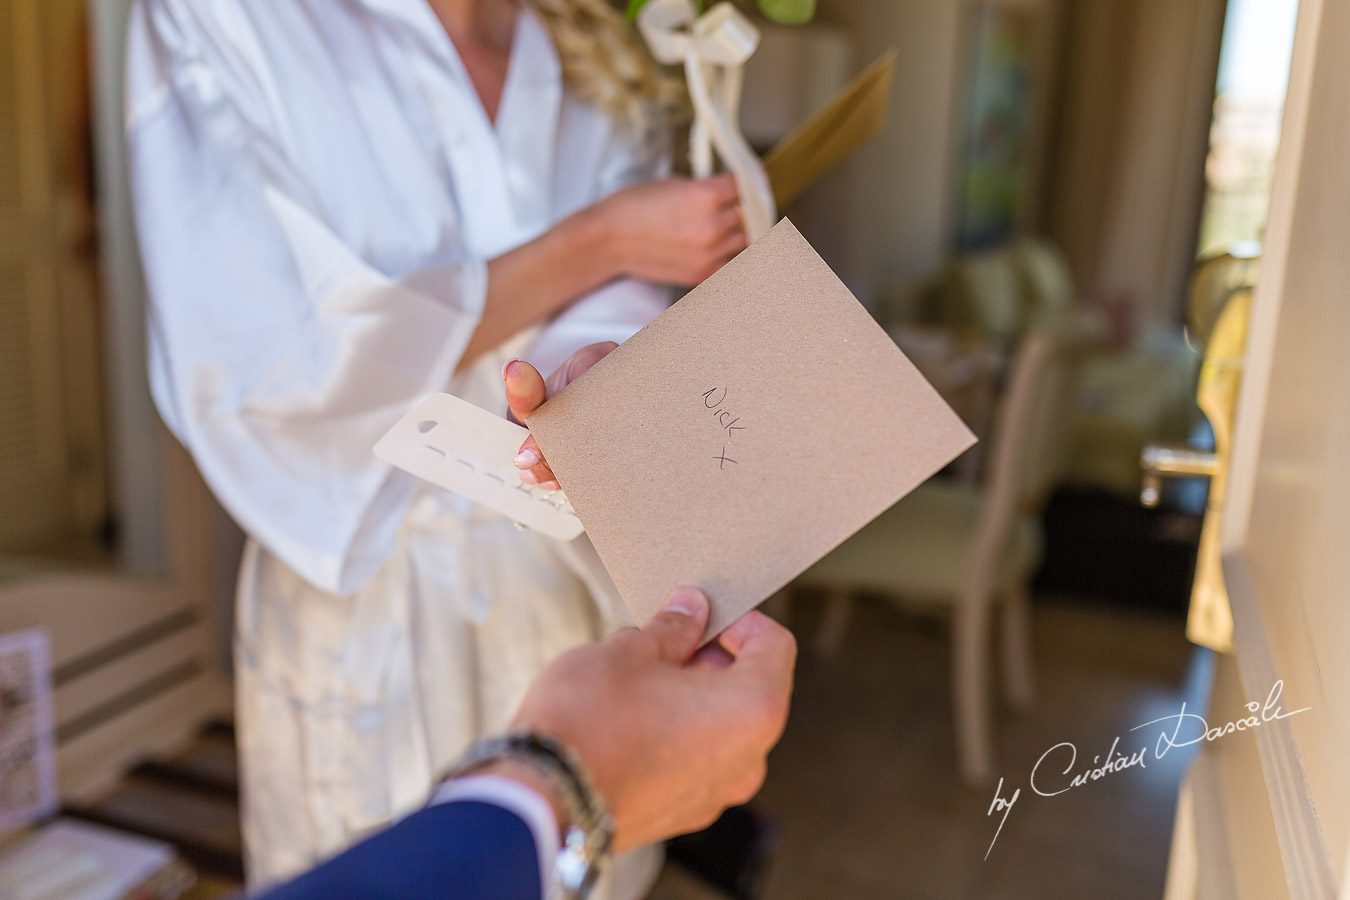 The Bride gives back to the Bestman an envelope for the Groom captured at Aphrodite Hills Resort before the wedding ceremony by Cristian Dascalu.